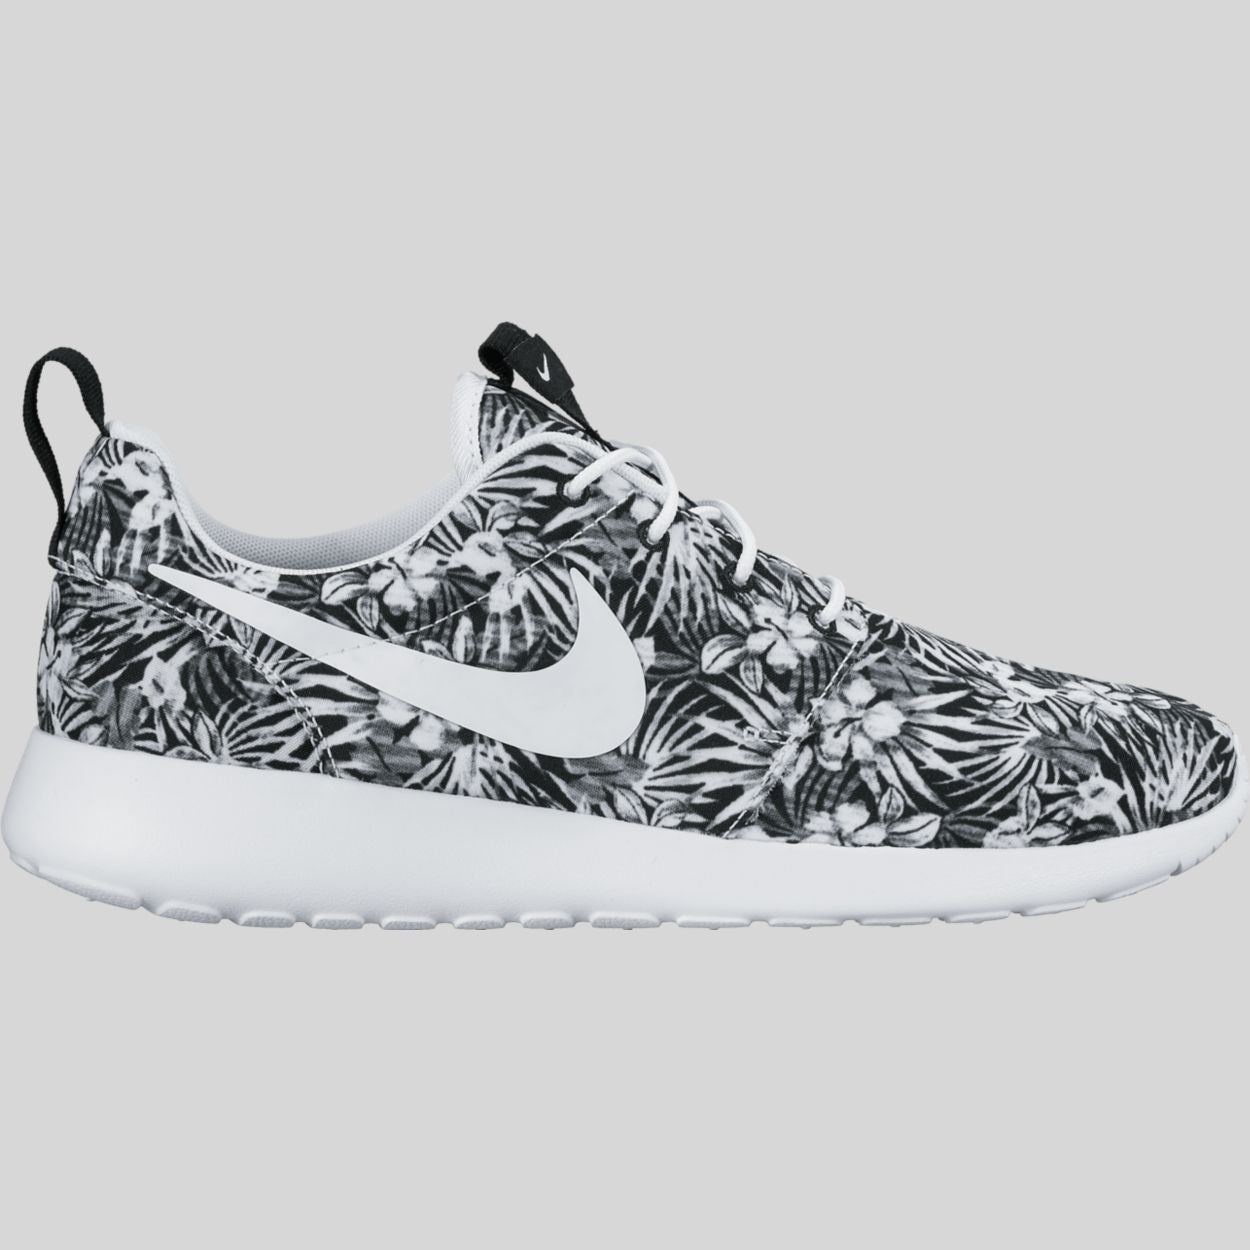 nike roshes floral black and white prints